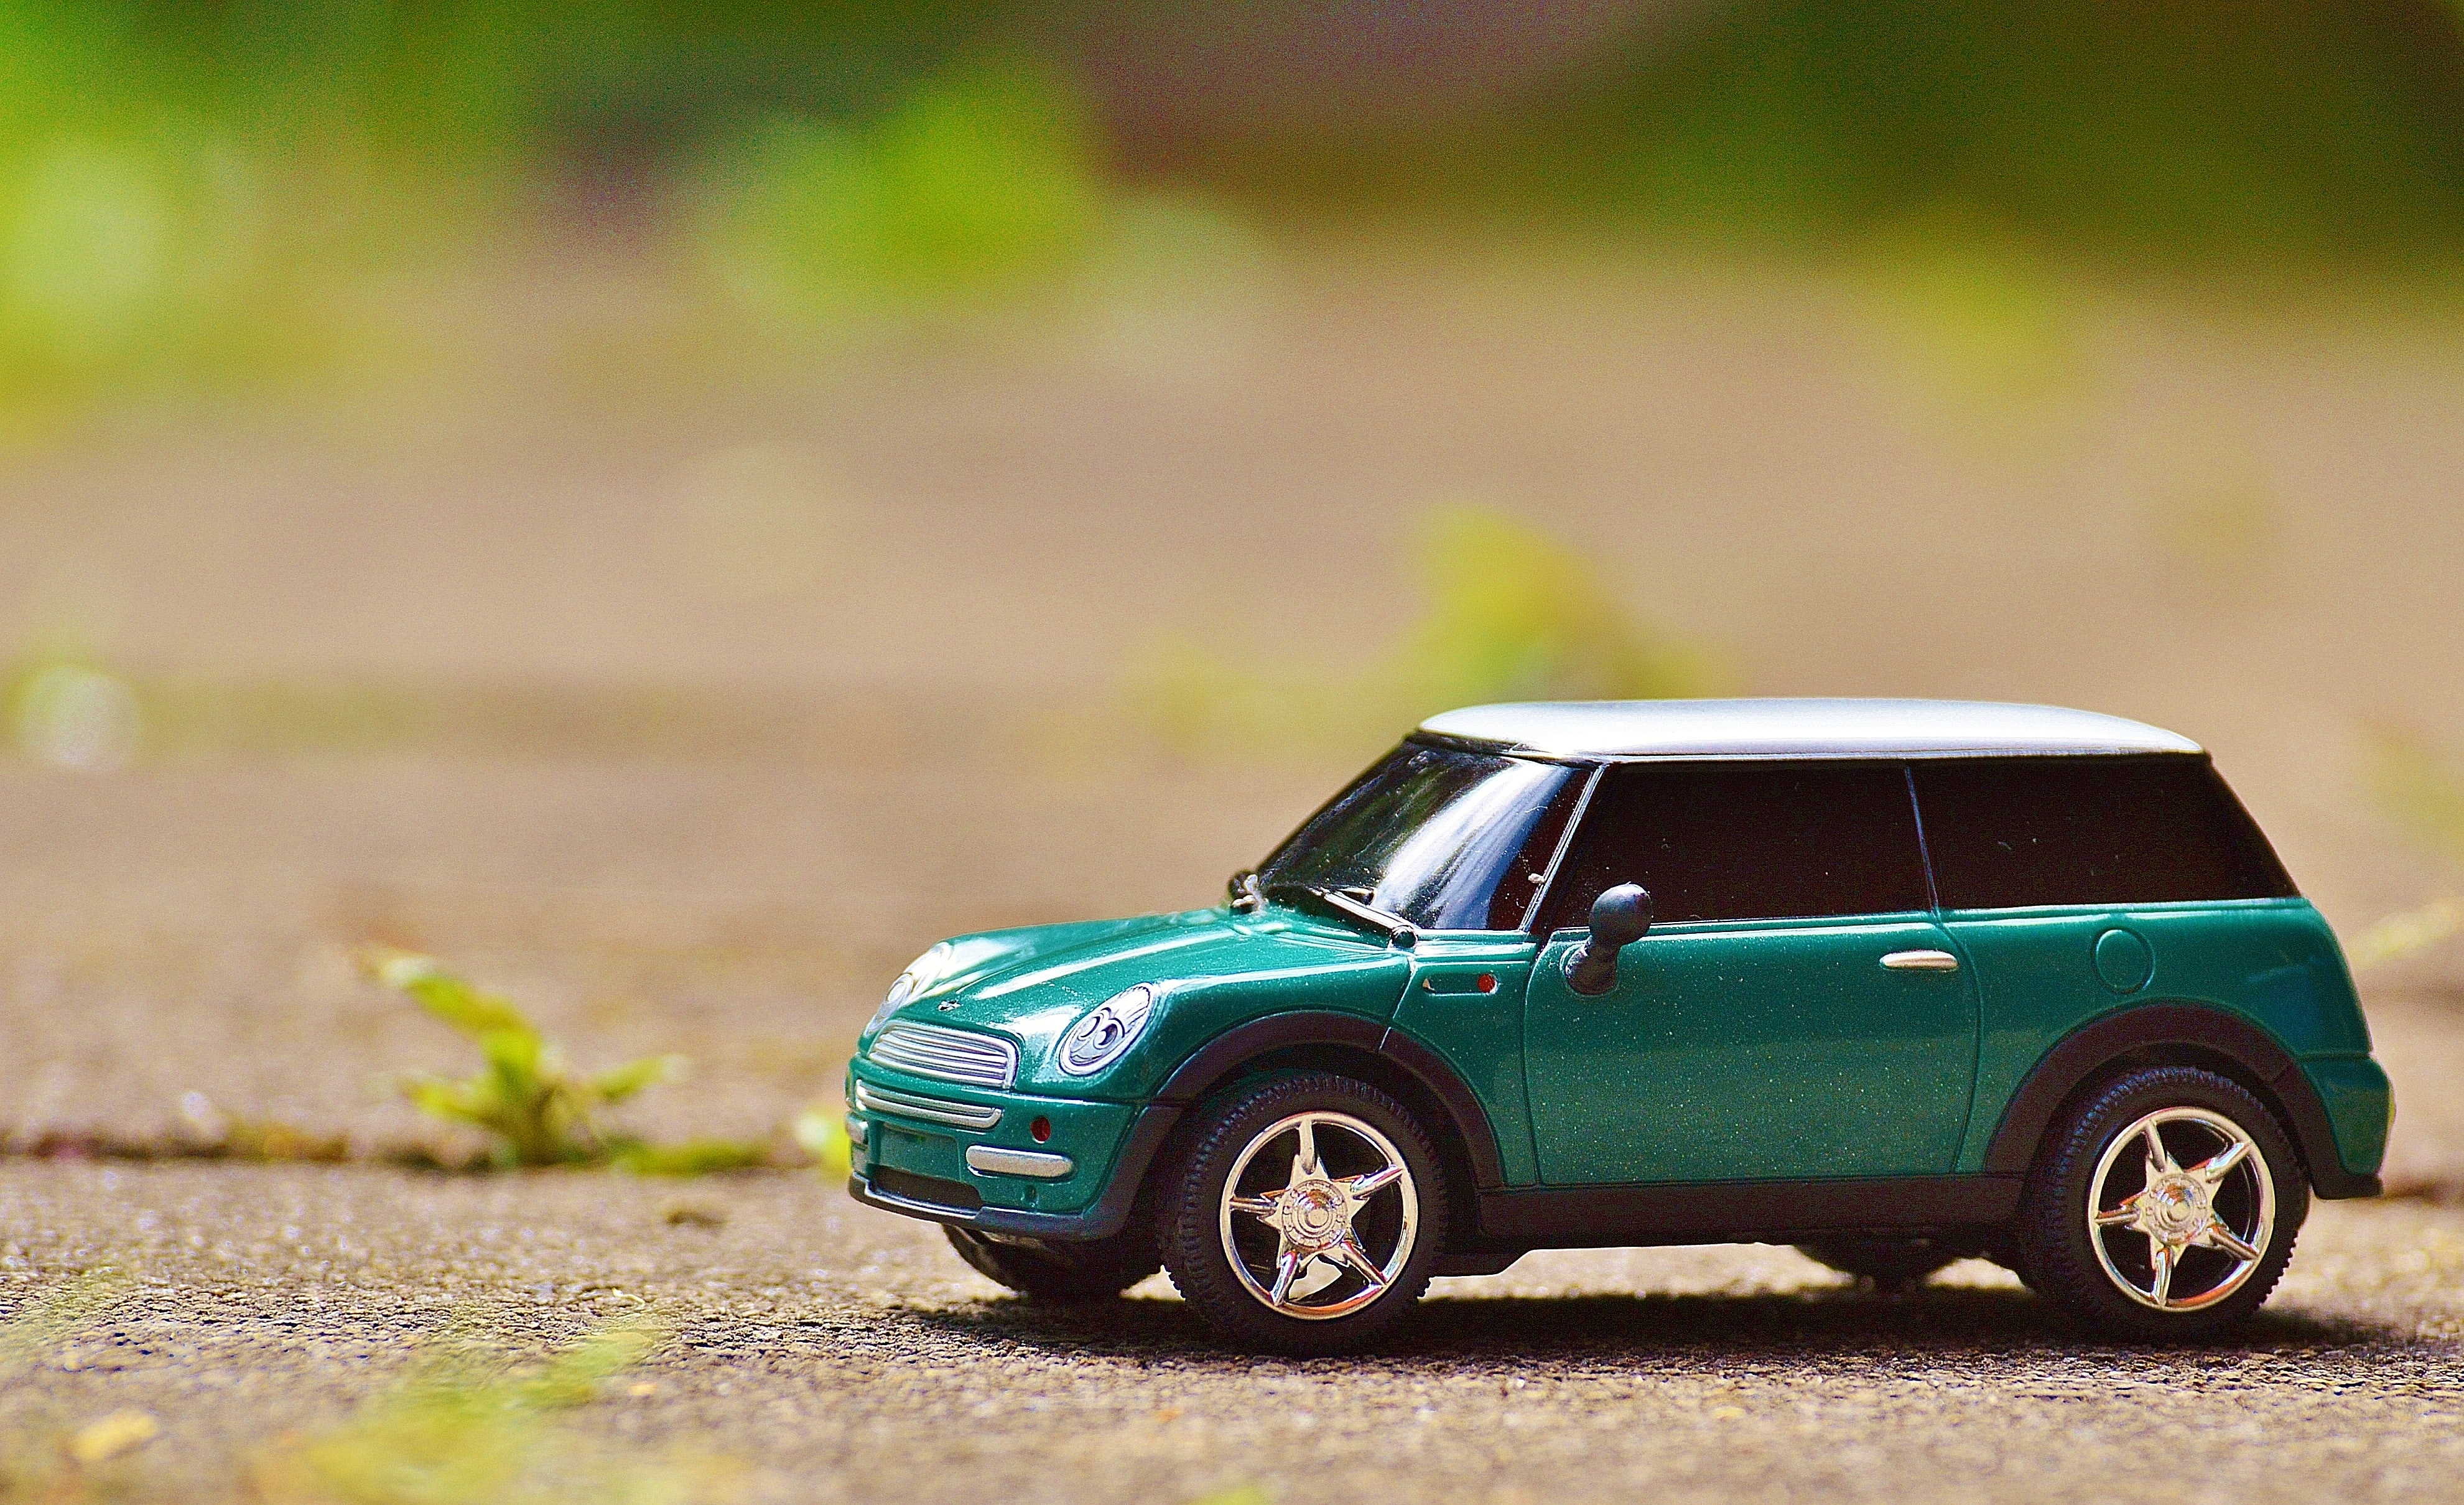 Green Scale Model Car On Brown Pavement Free Stock Photo